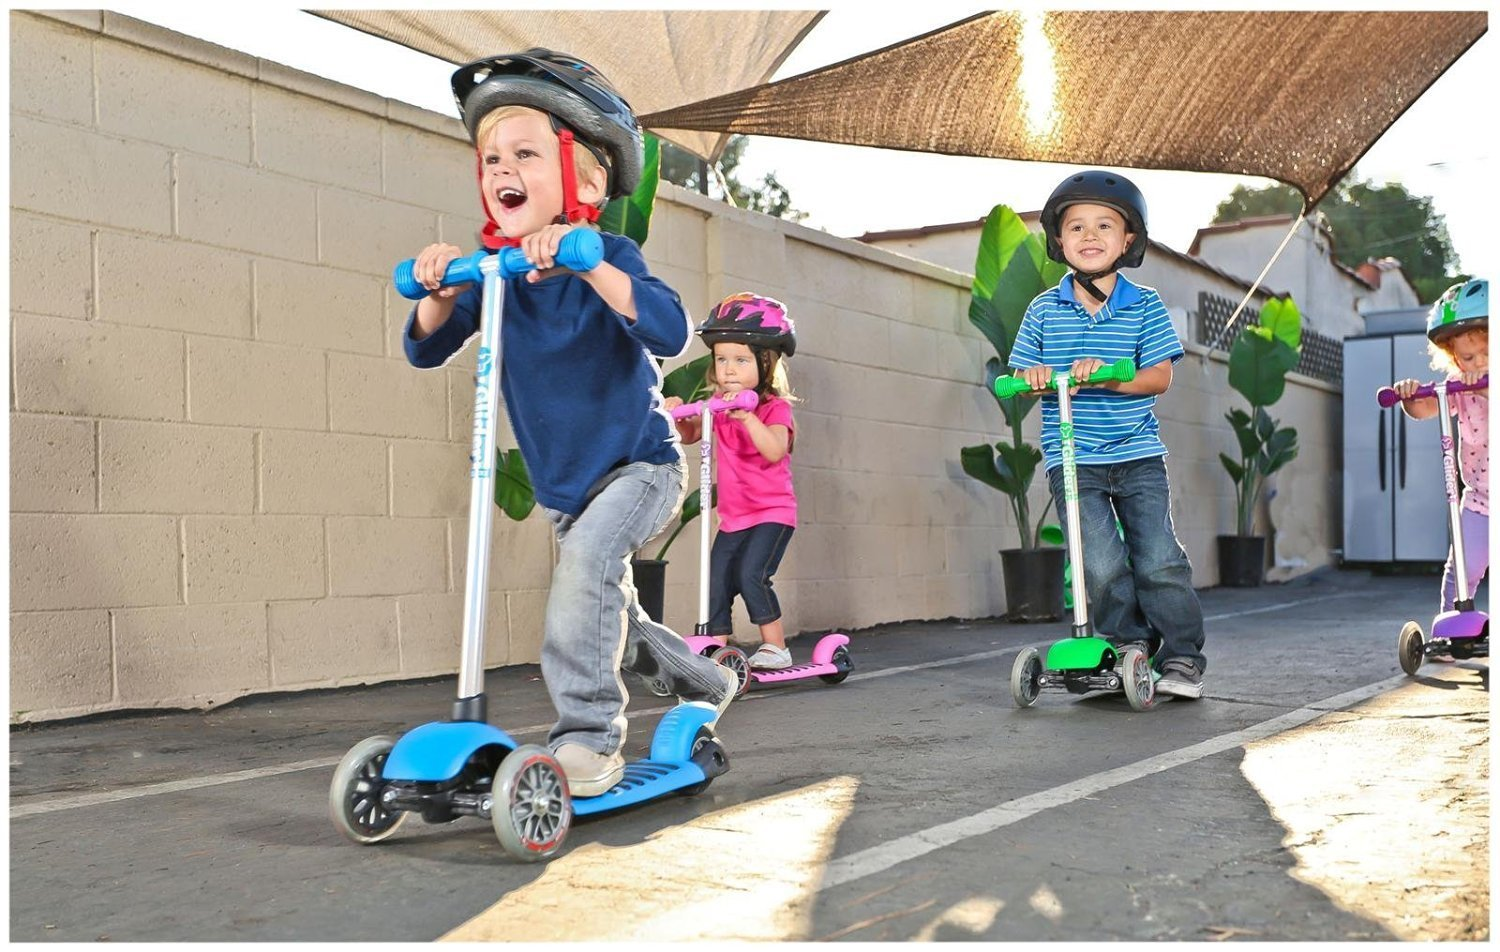 Yvolution Y Glider Deluxe Scooter Review Kids Toys News